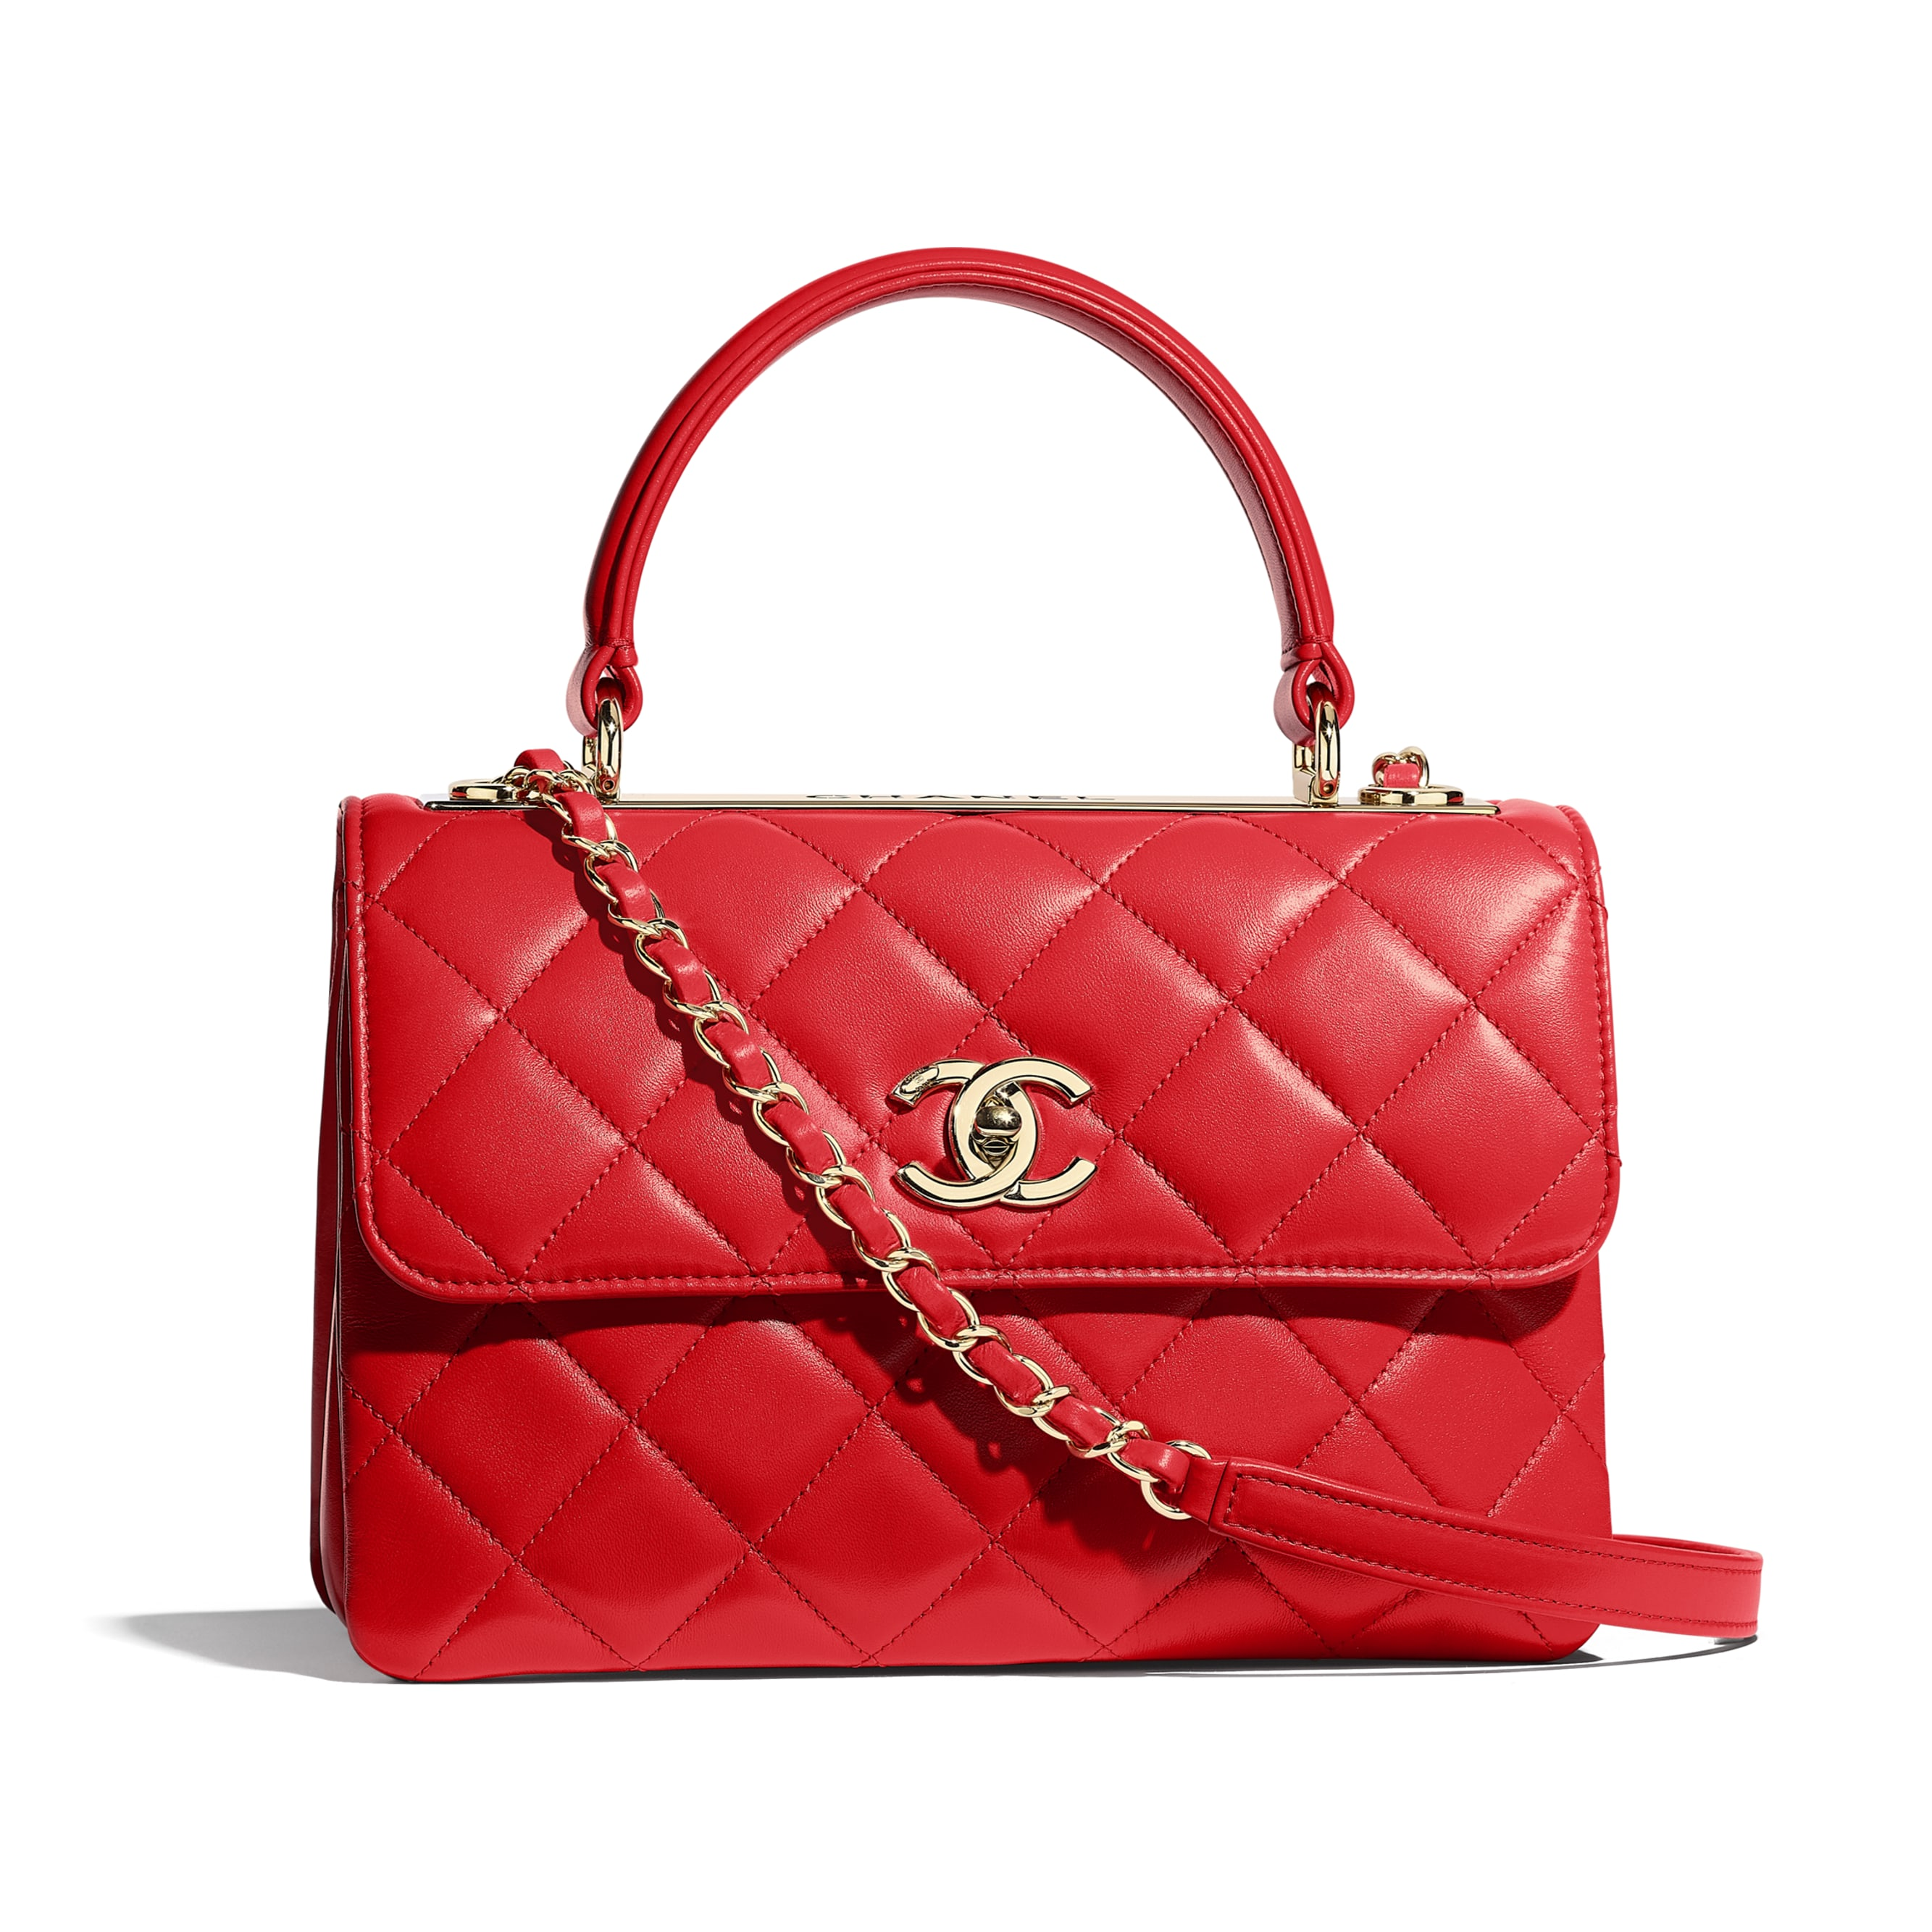 Small Flap Bag with Top Handle - Red - Lambskin & Gold-Tone Metal - Default view - see standard sized version